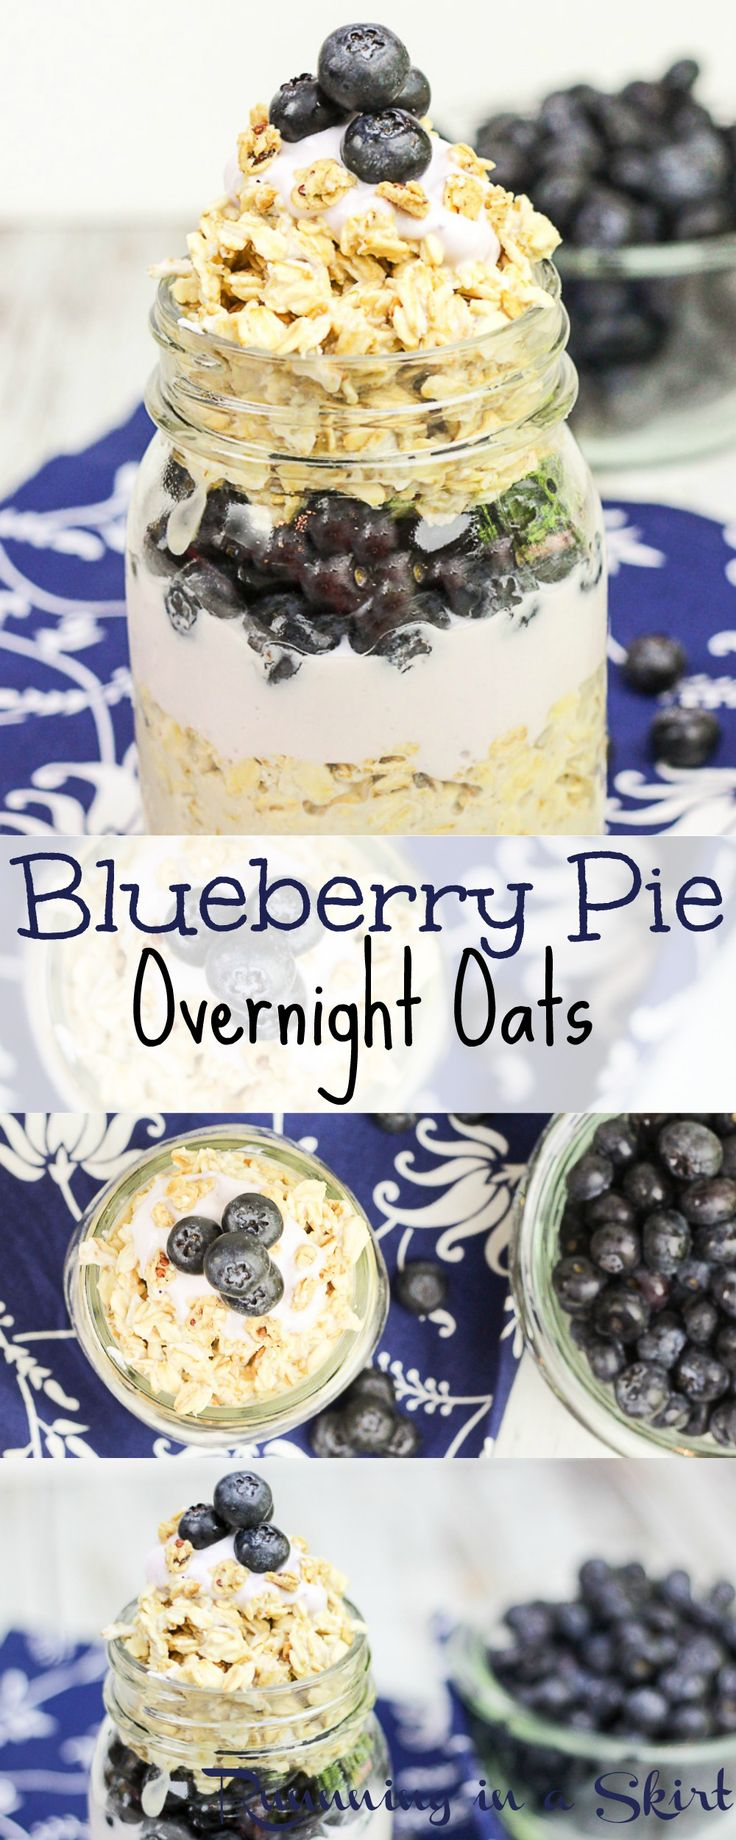 Blueberry Pie Overnight Oats recipe. A healthy breakfast to start your mornings. A fresh take on a the healthy blueberry pie flavors. Lot's of great oatmeal recipes on Running in a Skirt! / Running in a Skirt